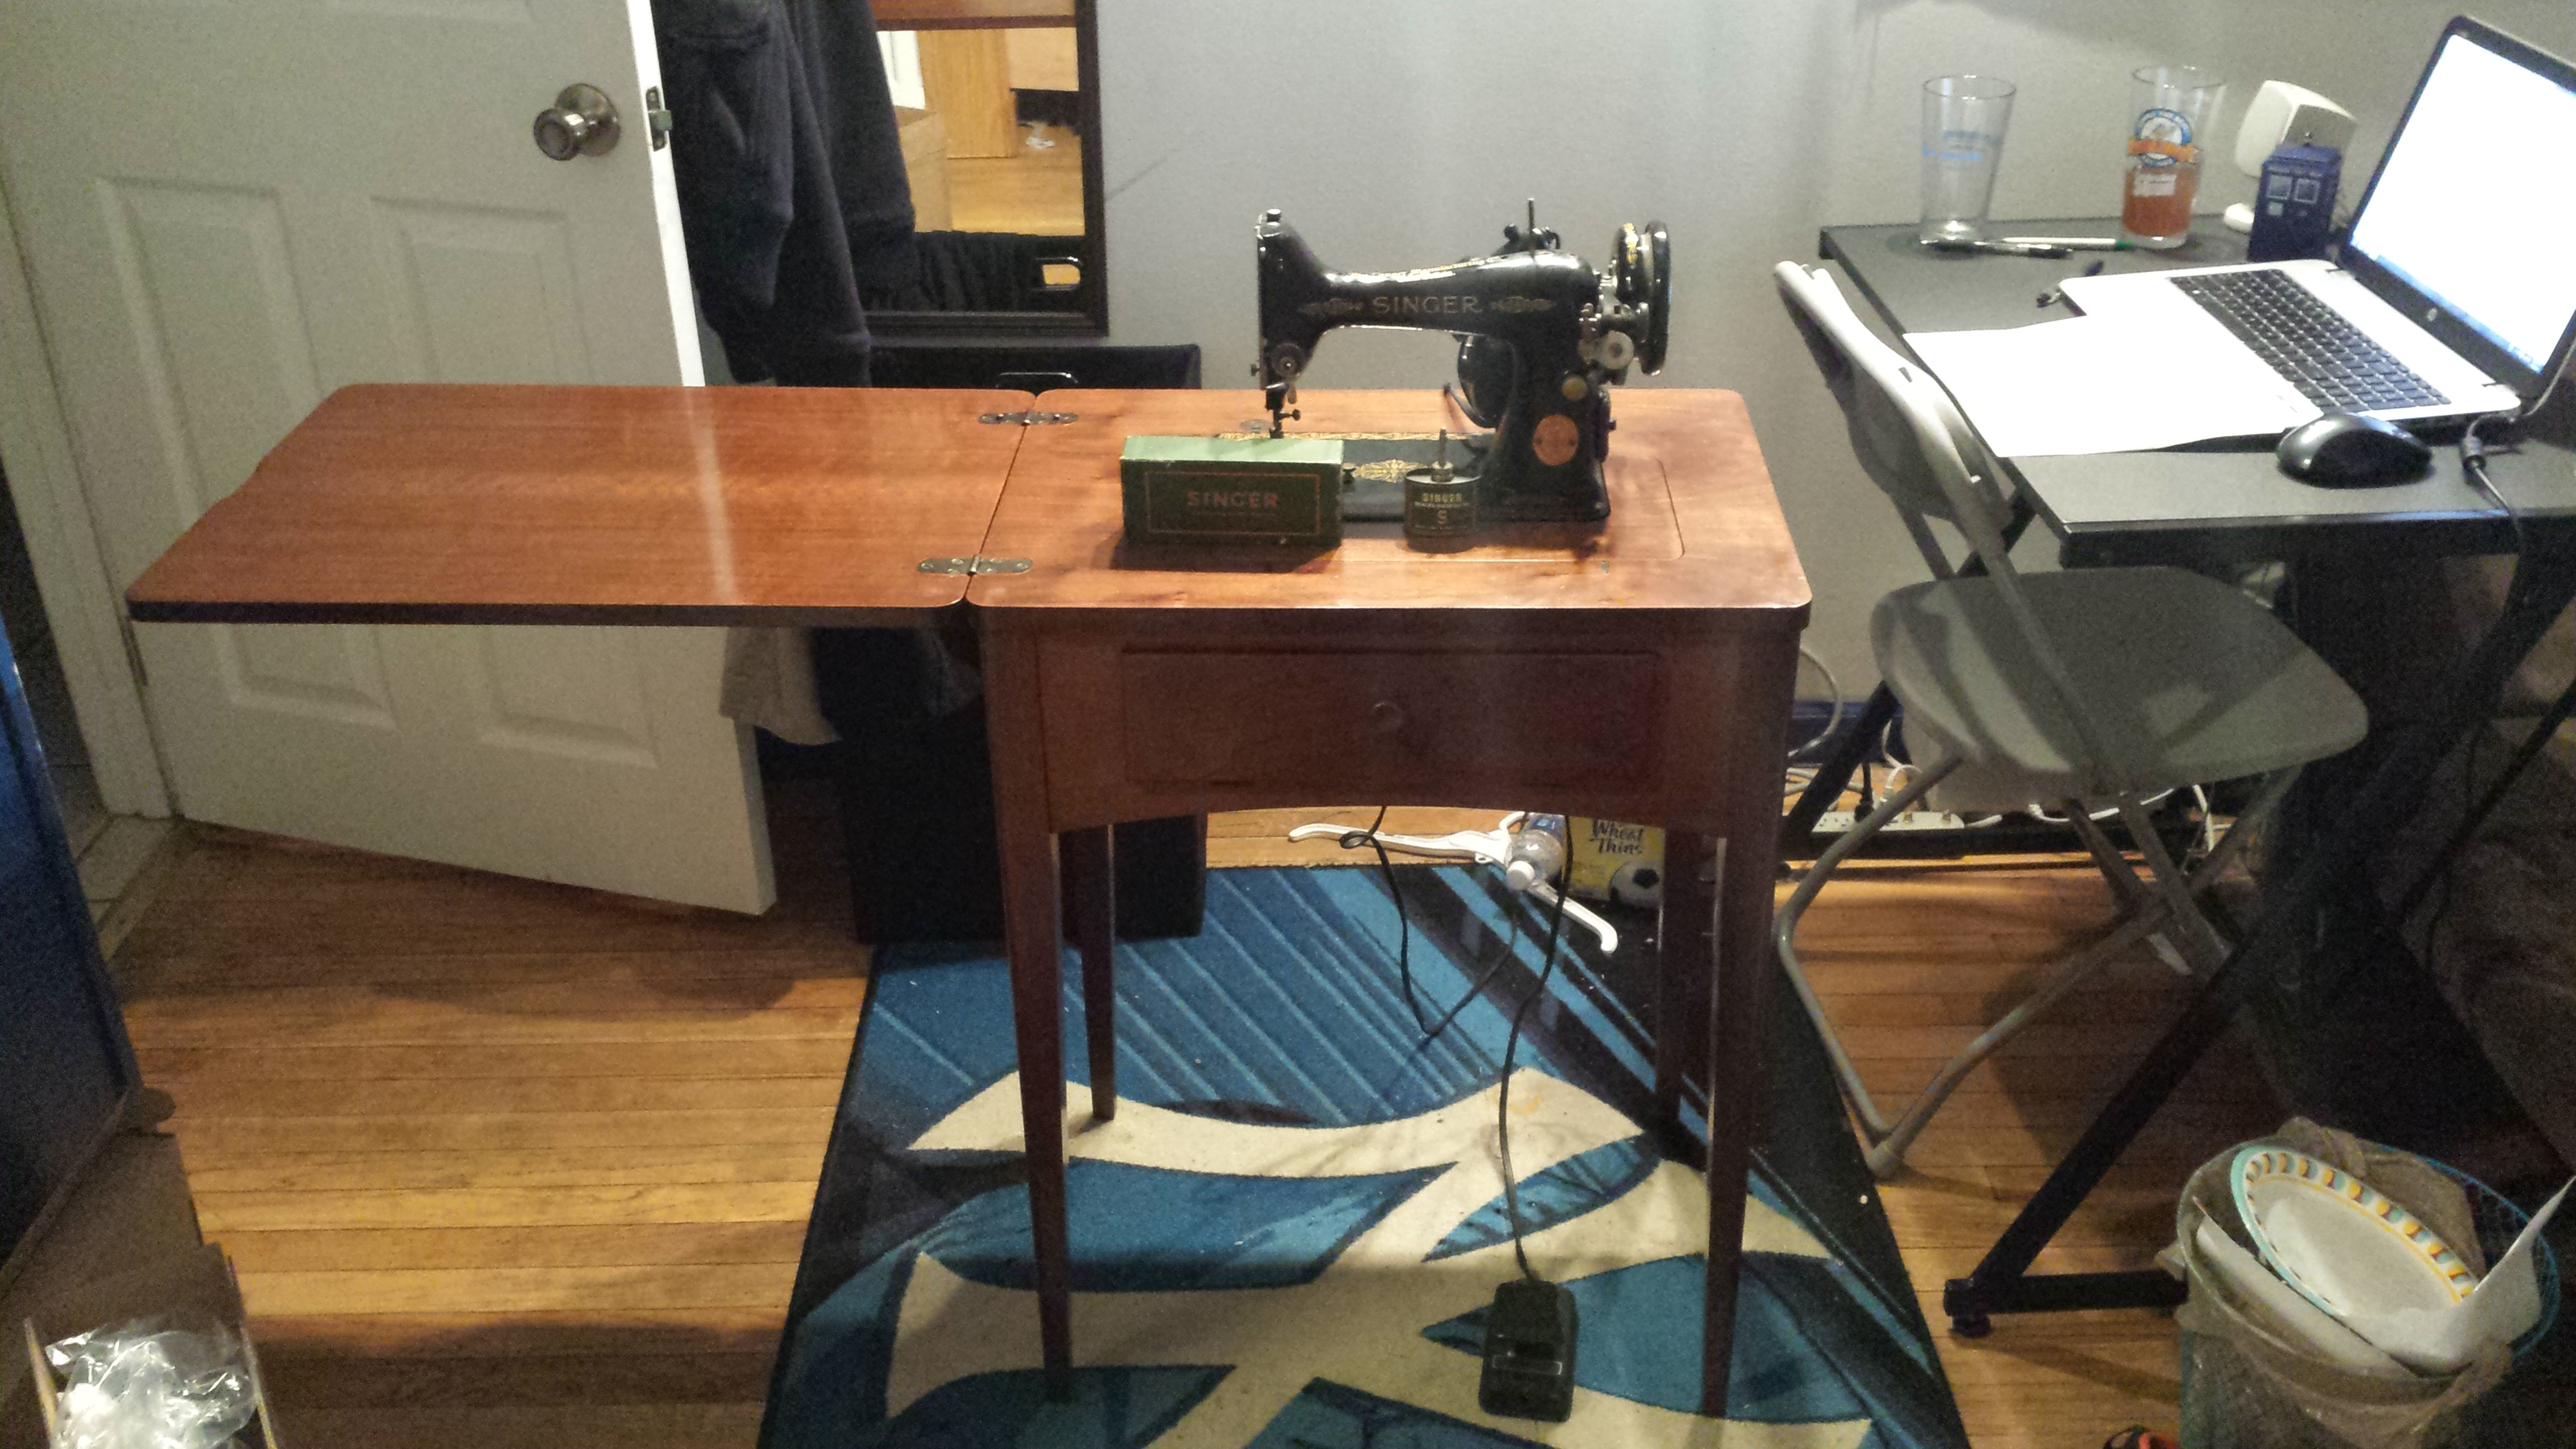 Antique 1949 Singer Sewing Machine With Sewing Cabinet.